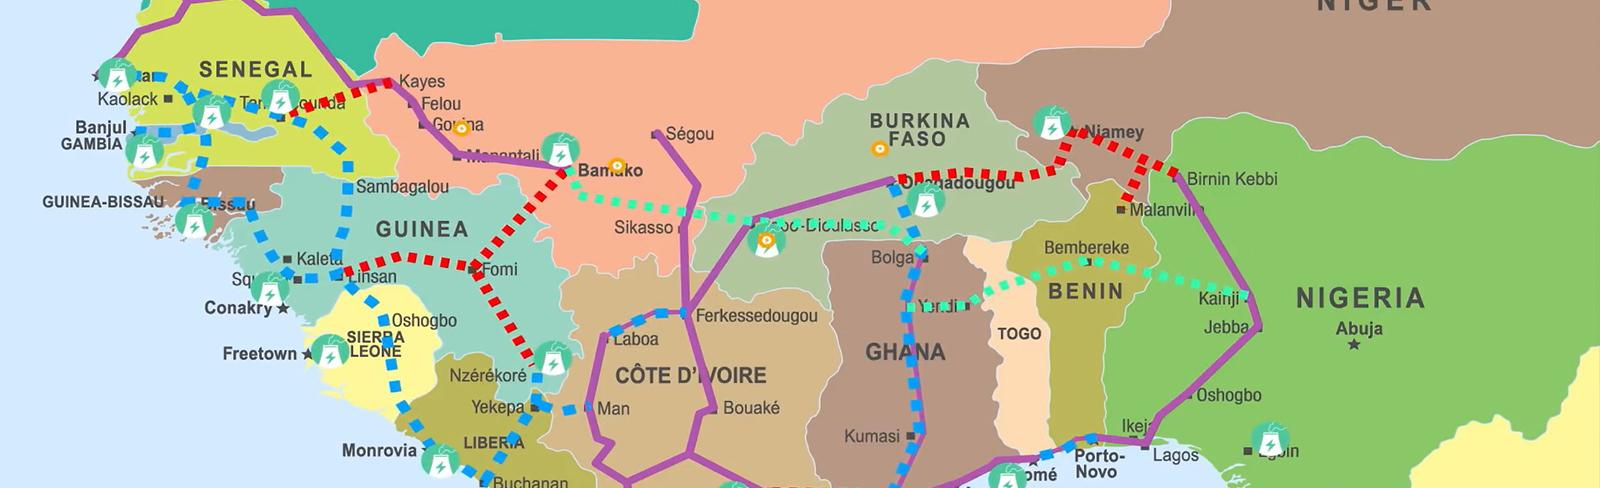 A Strategy for Power Trade Across West Africa